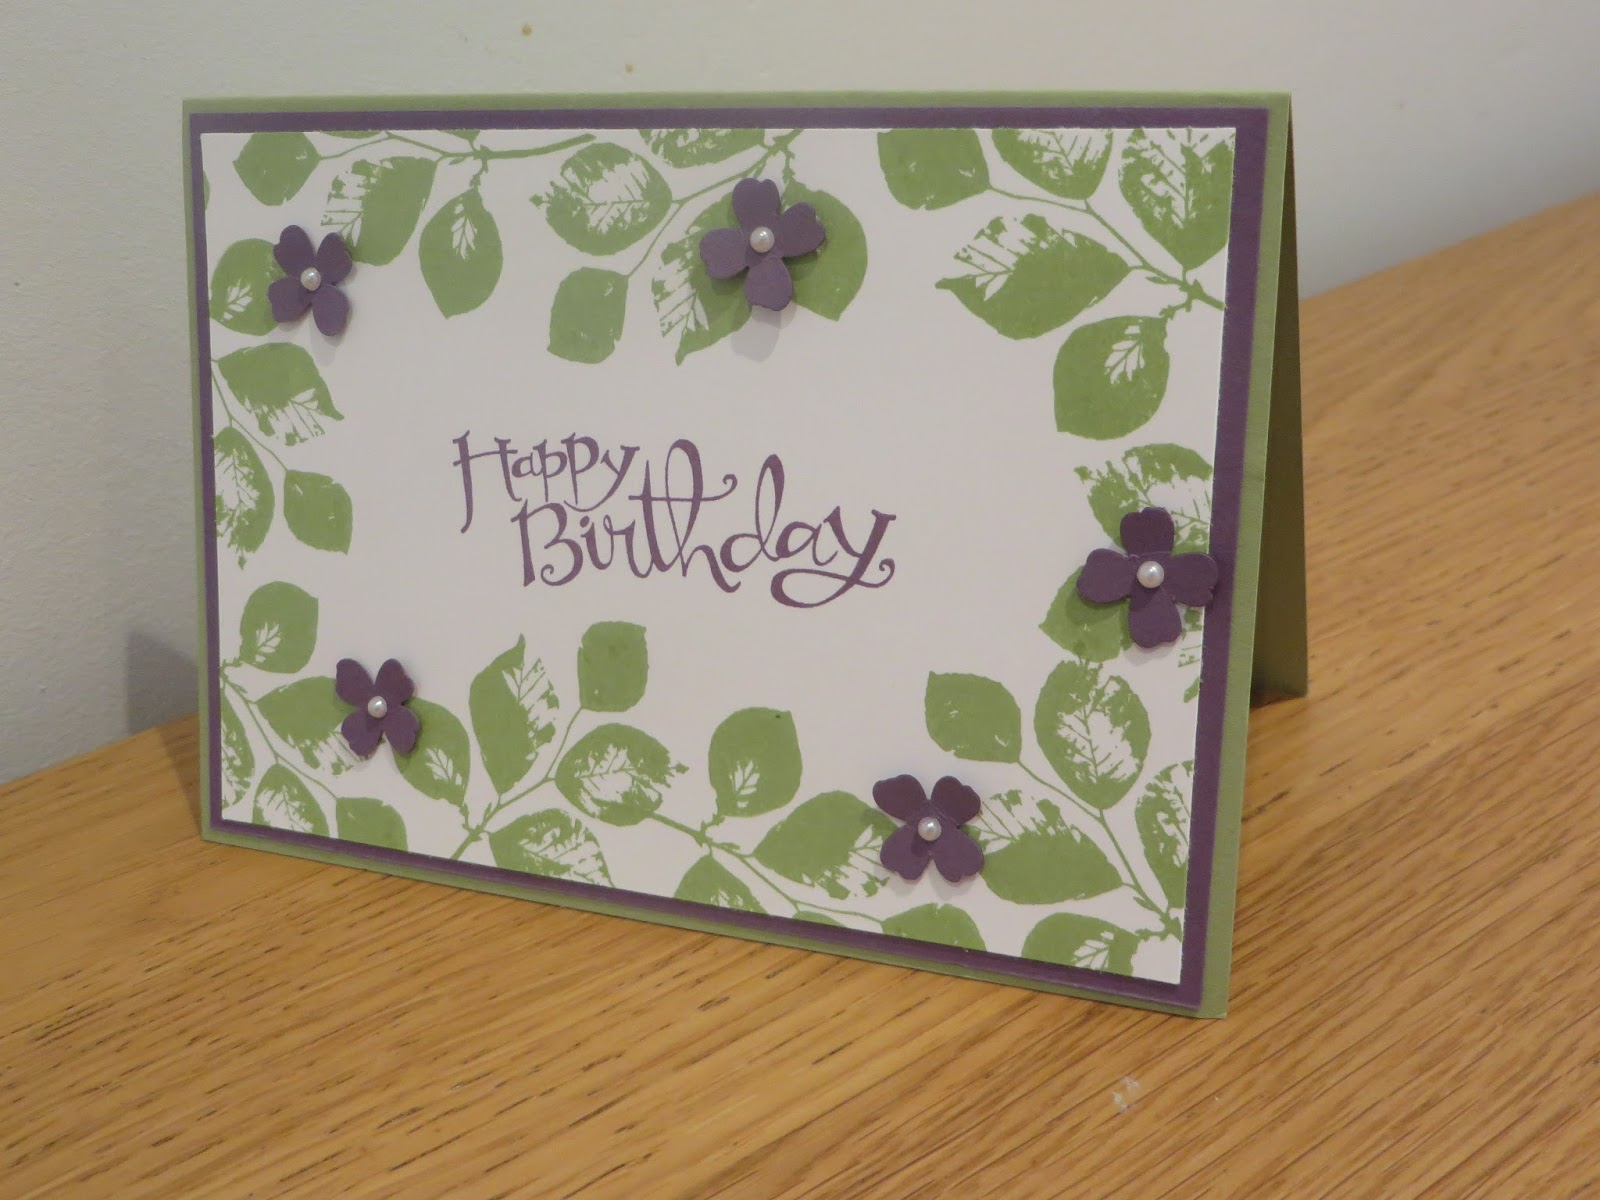 Stampin up birthday card ideas gangcraft craftycarolinecreates leafy kinda eclectic birthday card idea birthday card bookmarktalkfo Choice Image